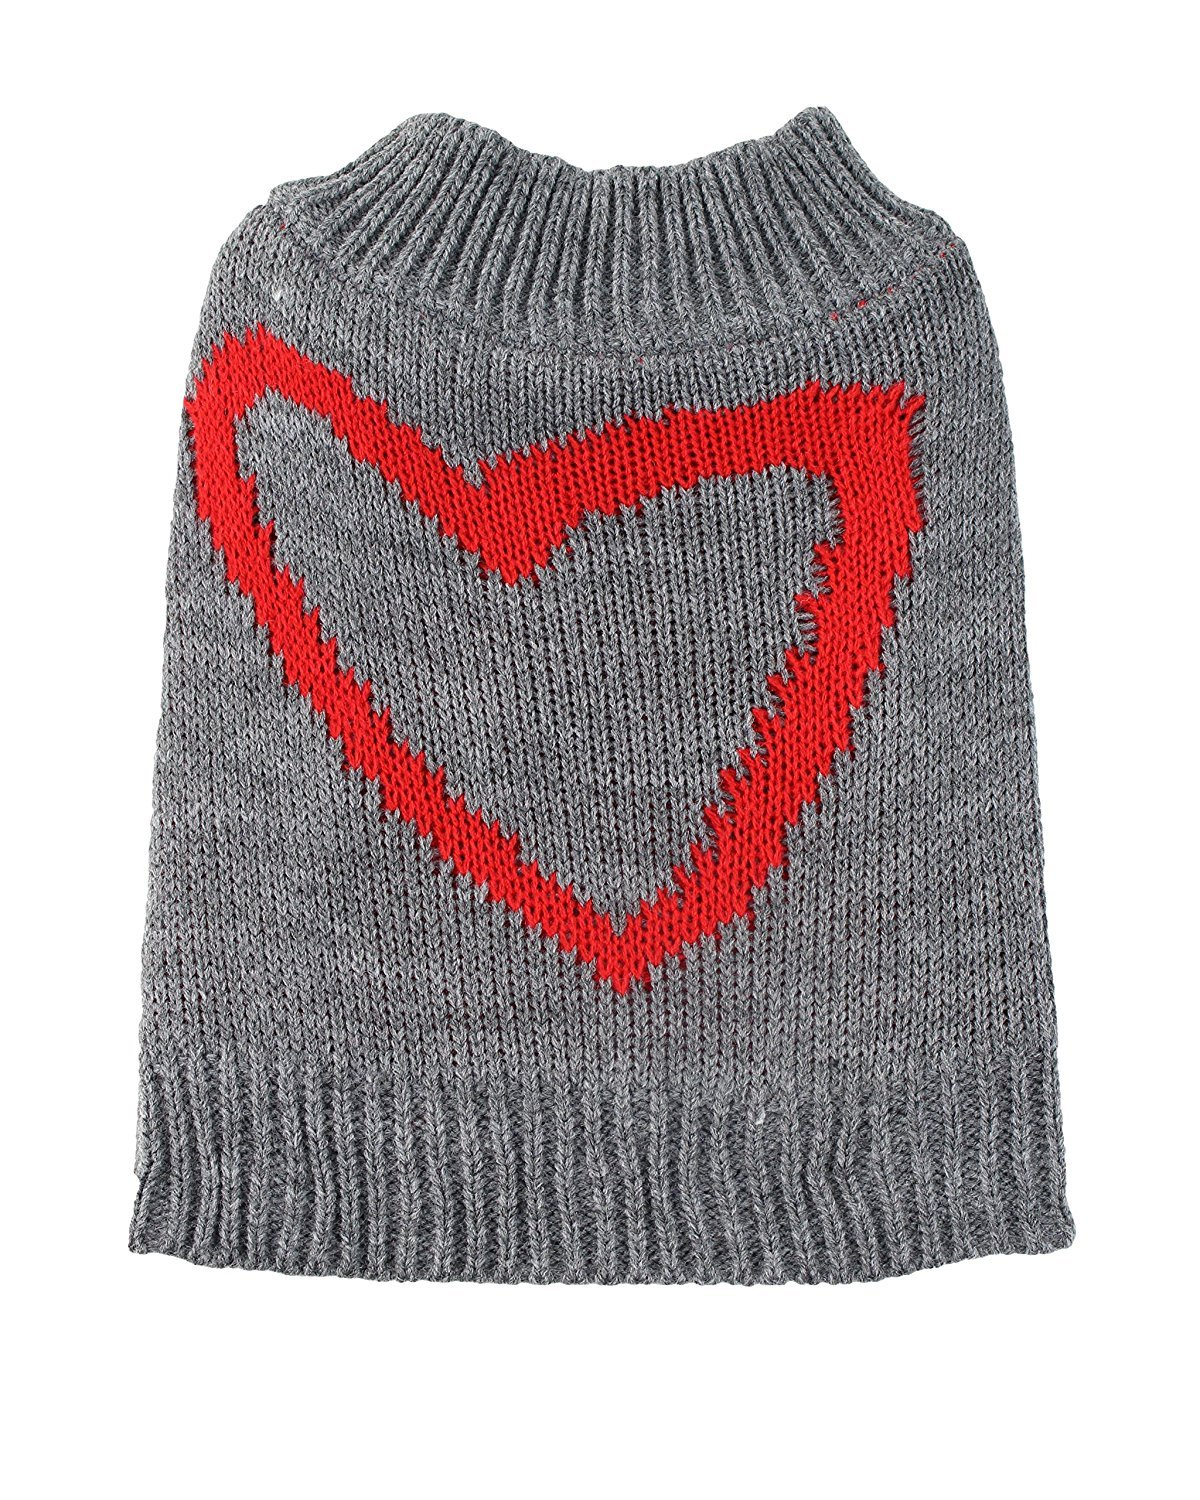 Small Red Heart Dog Sweater by Midlee fits 10'' Back Length